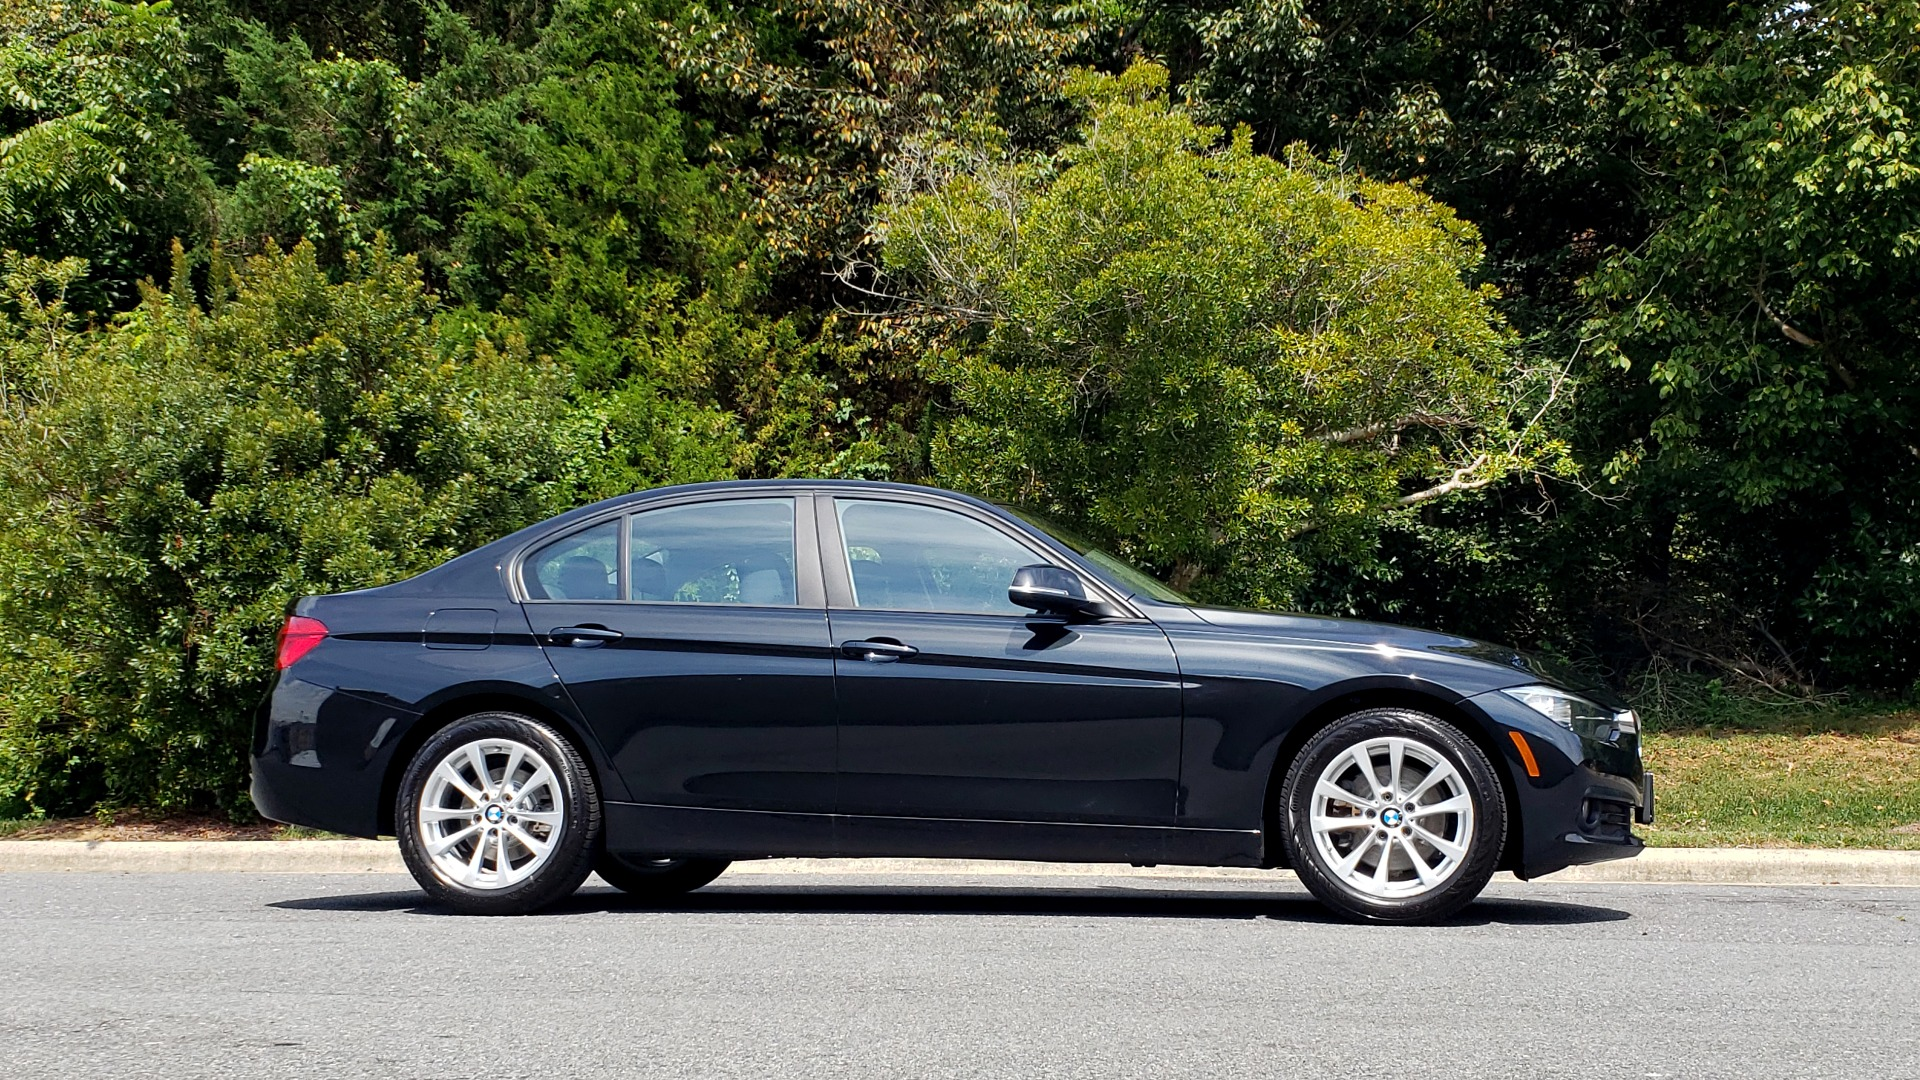 Used 2017 BMW 3 SERIES 320I XDRIVE / DRVR ASST / NAV / SUNROOF / HTD STS / REARVIEW for sale $21,995 at Formula Imports in Charlotte NC 28227 5